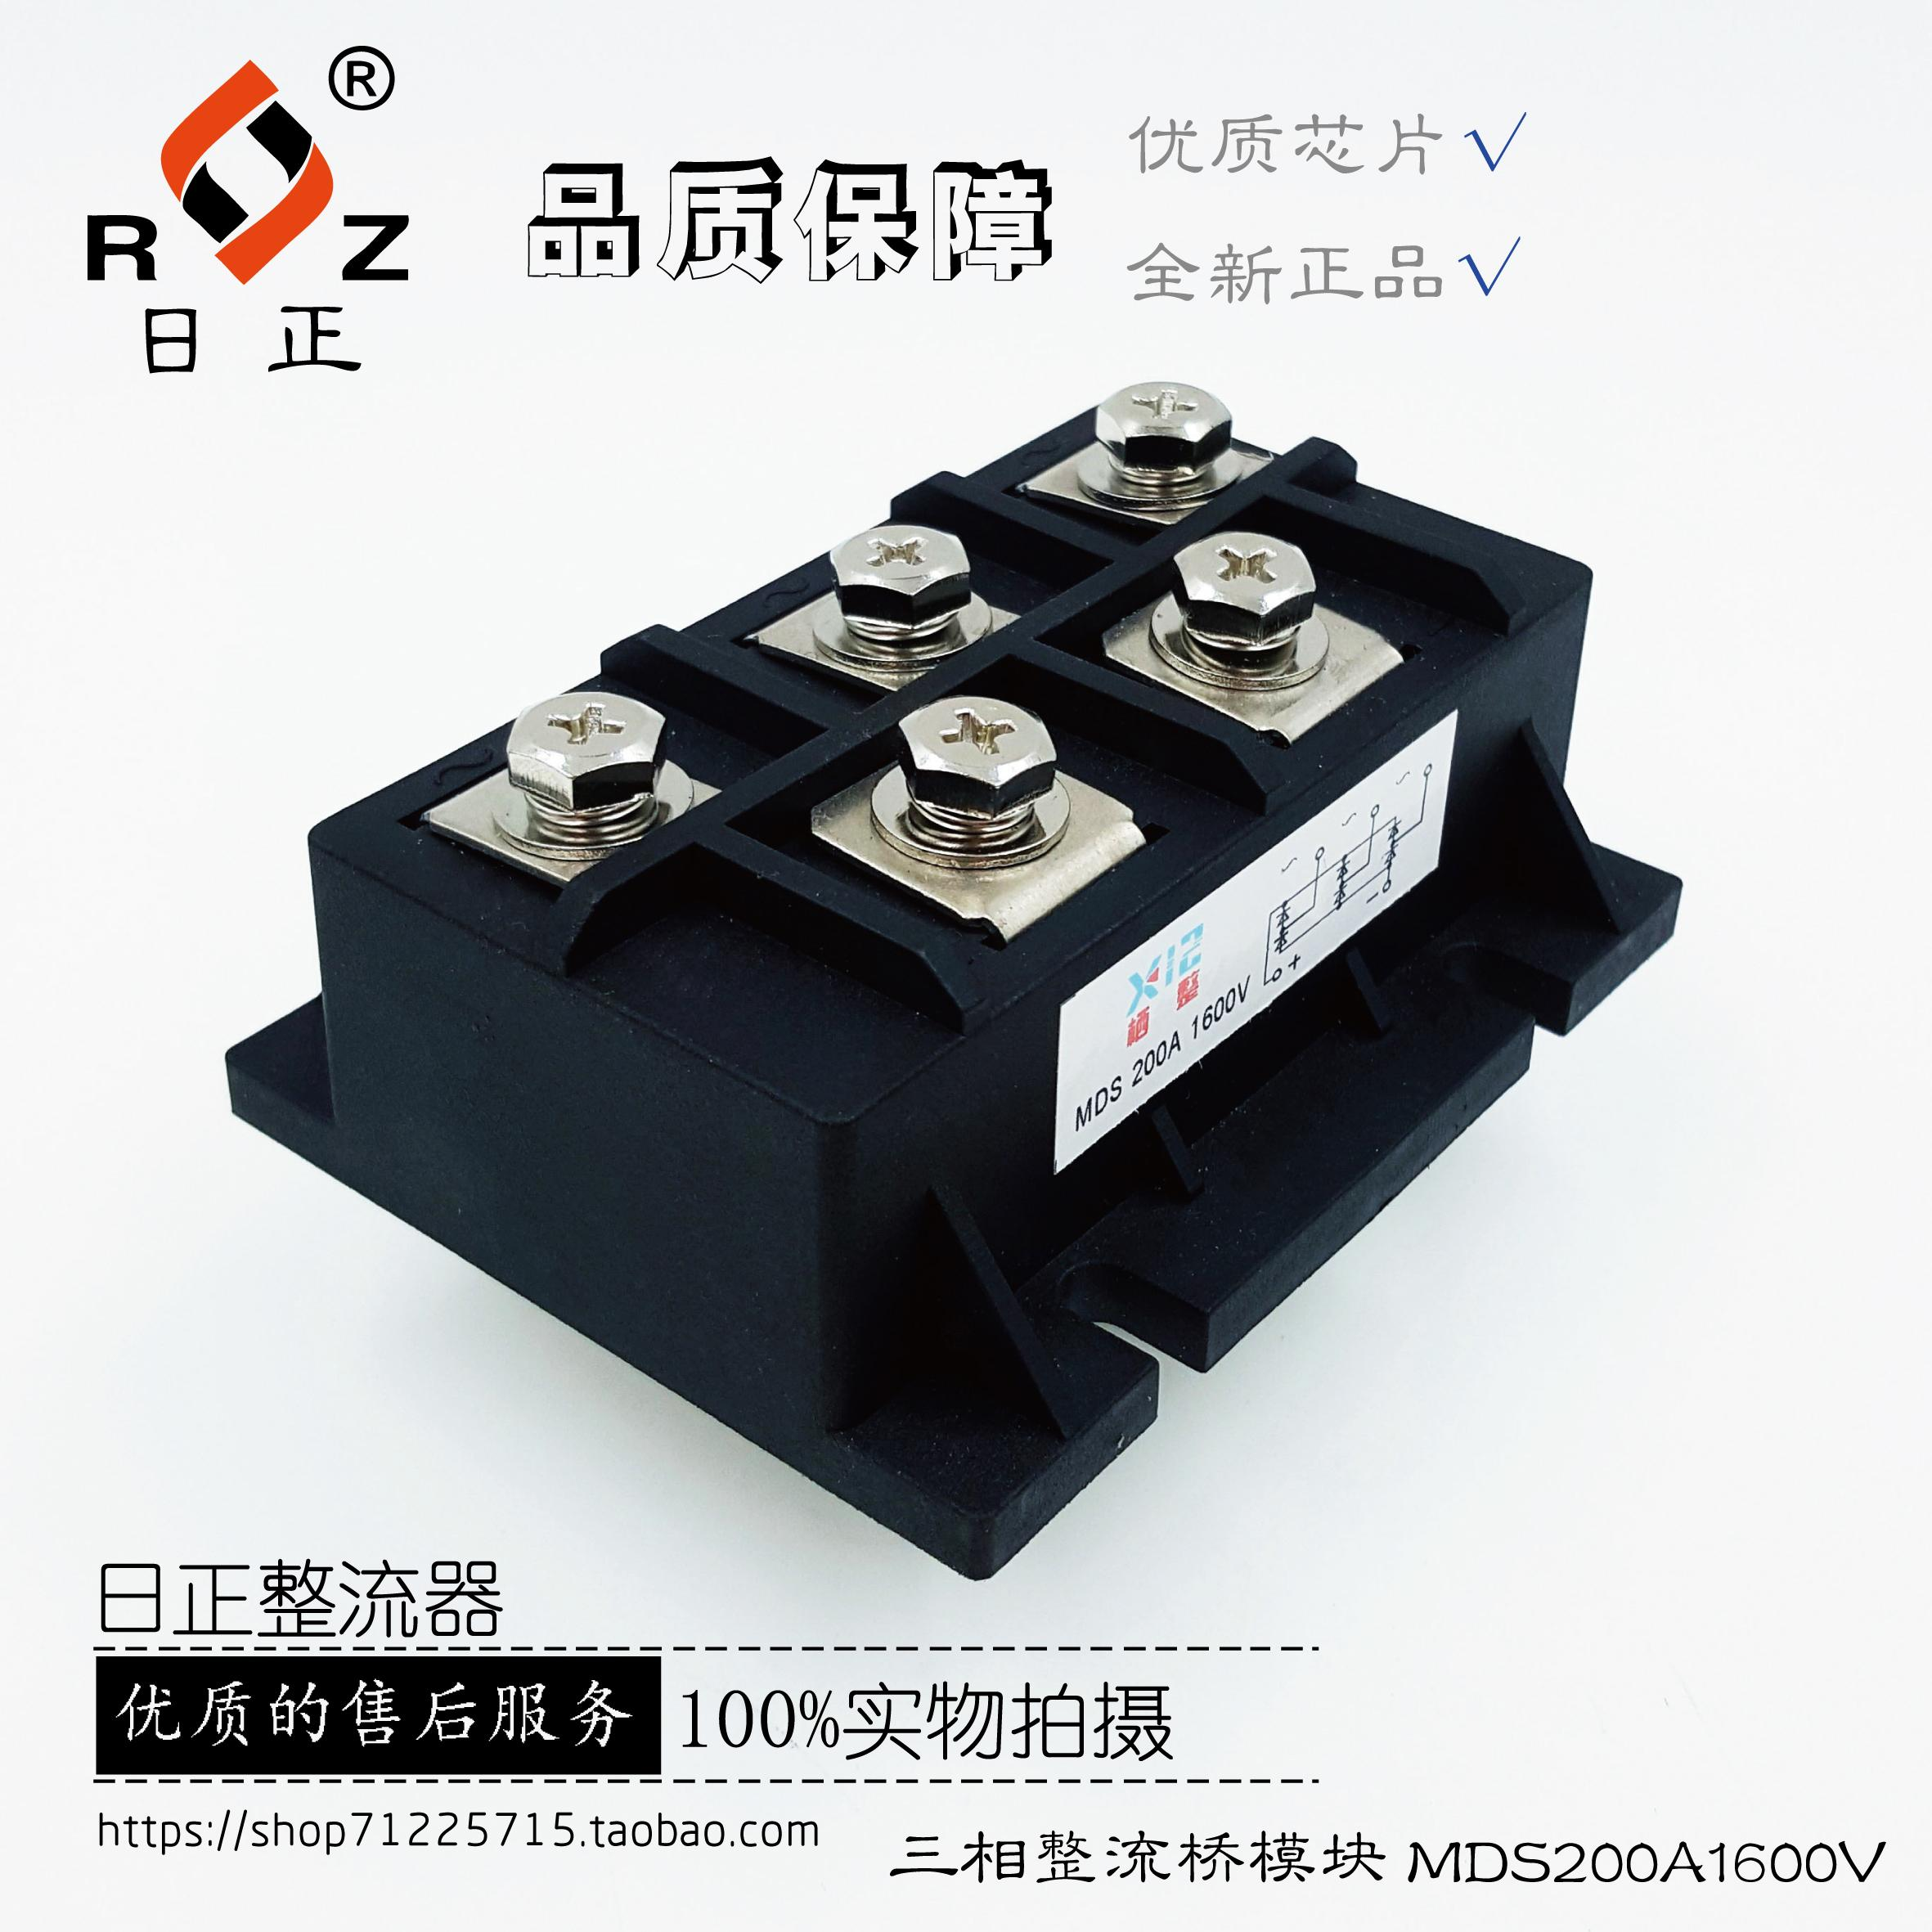 2019 Brand New Product Three Phase Rectifier Modules Circuit Bridge Mds20011600v High Quality Foot Power From Xwj829 2634